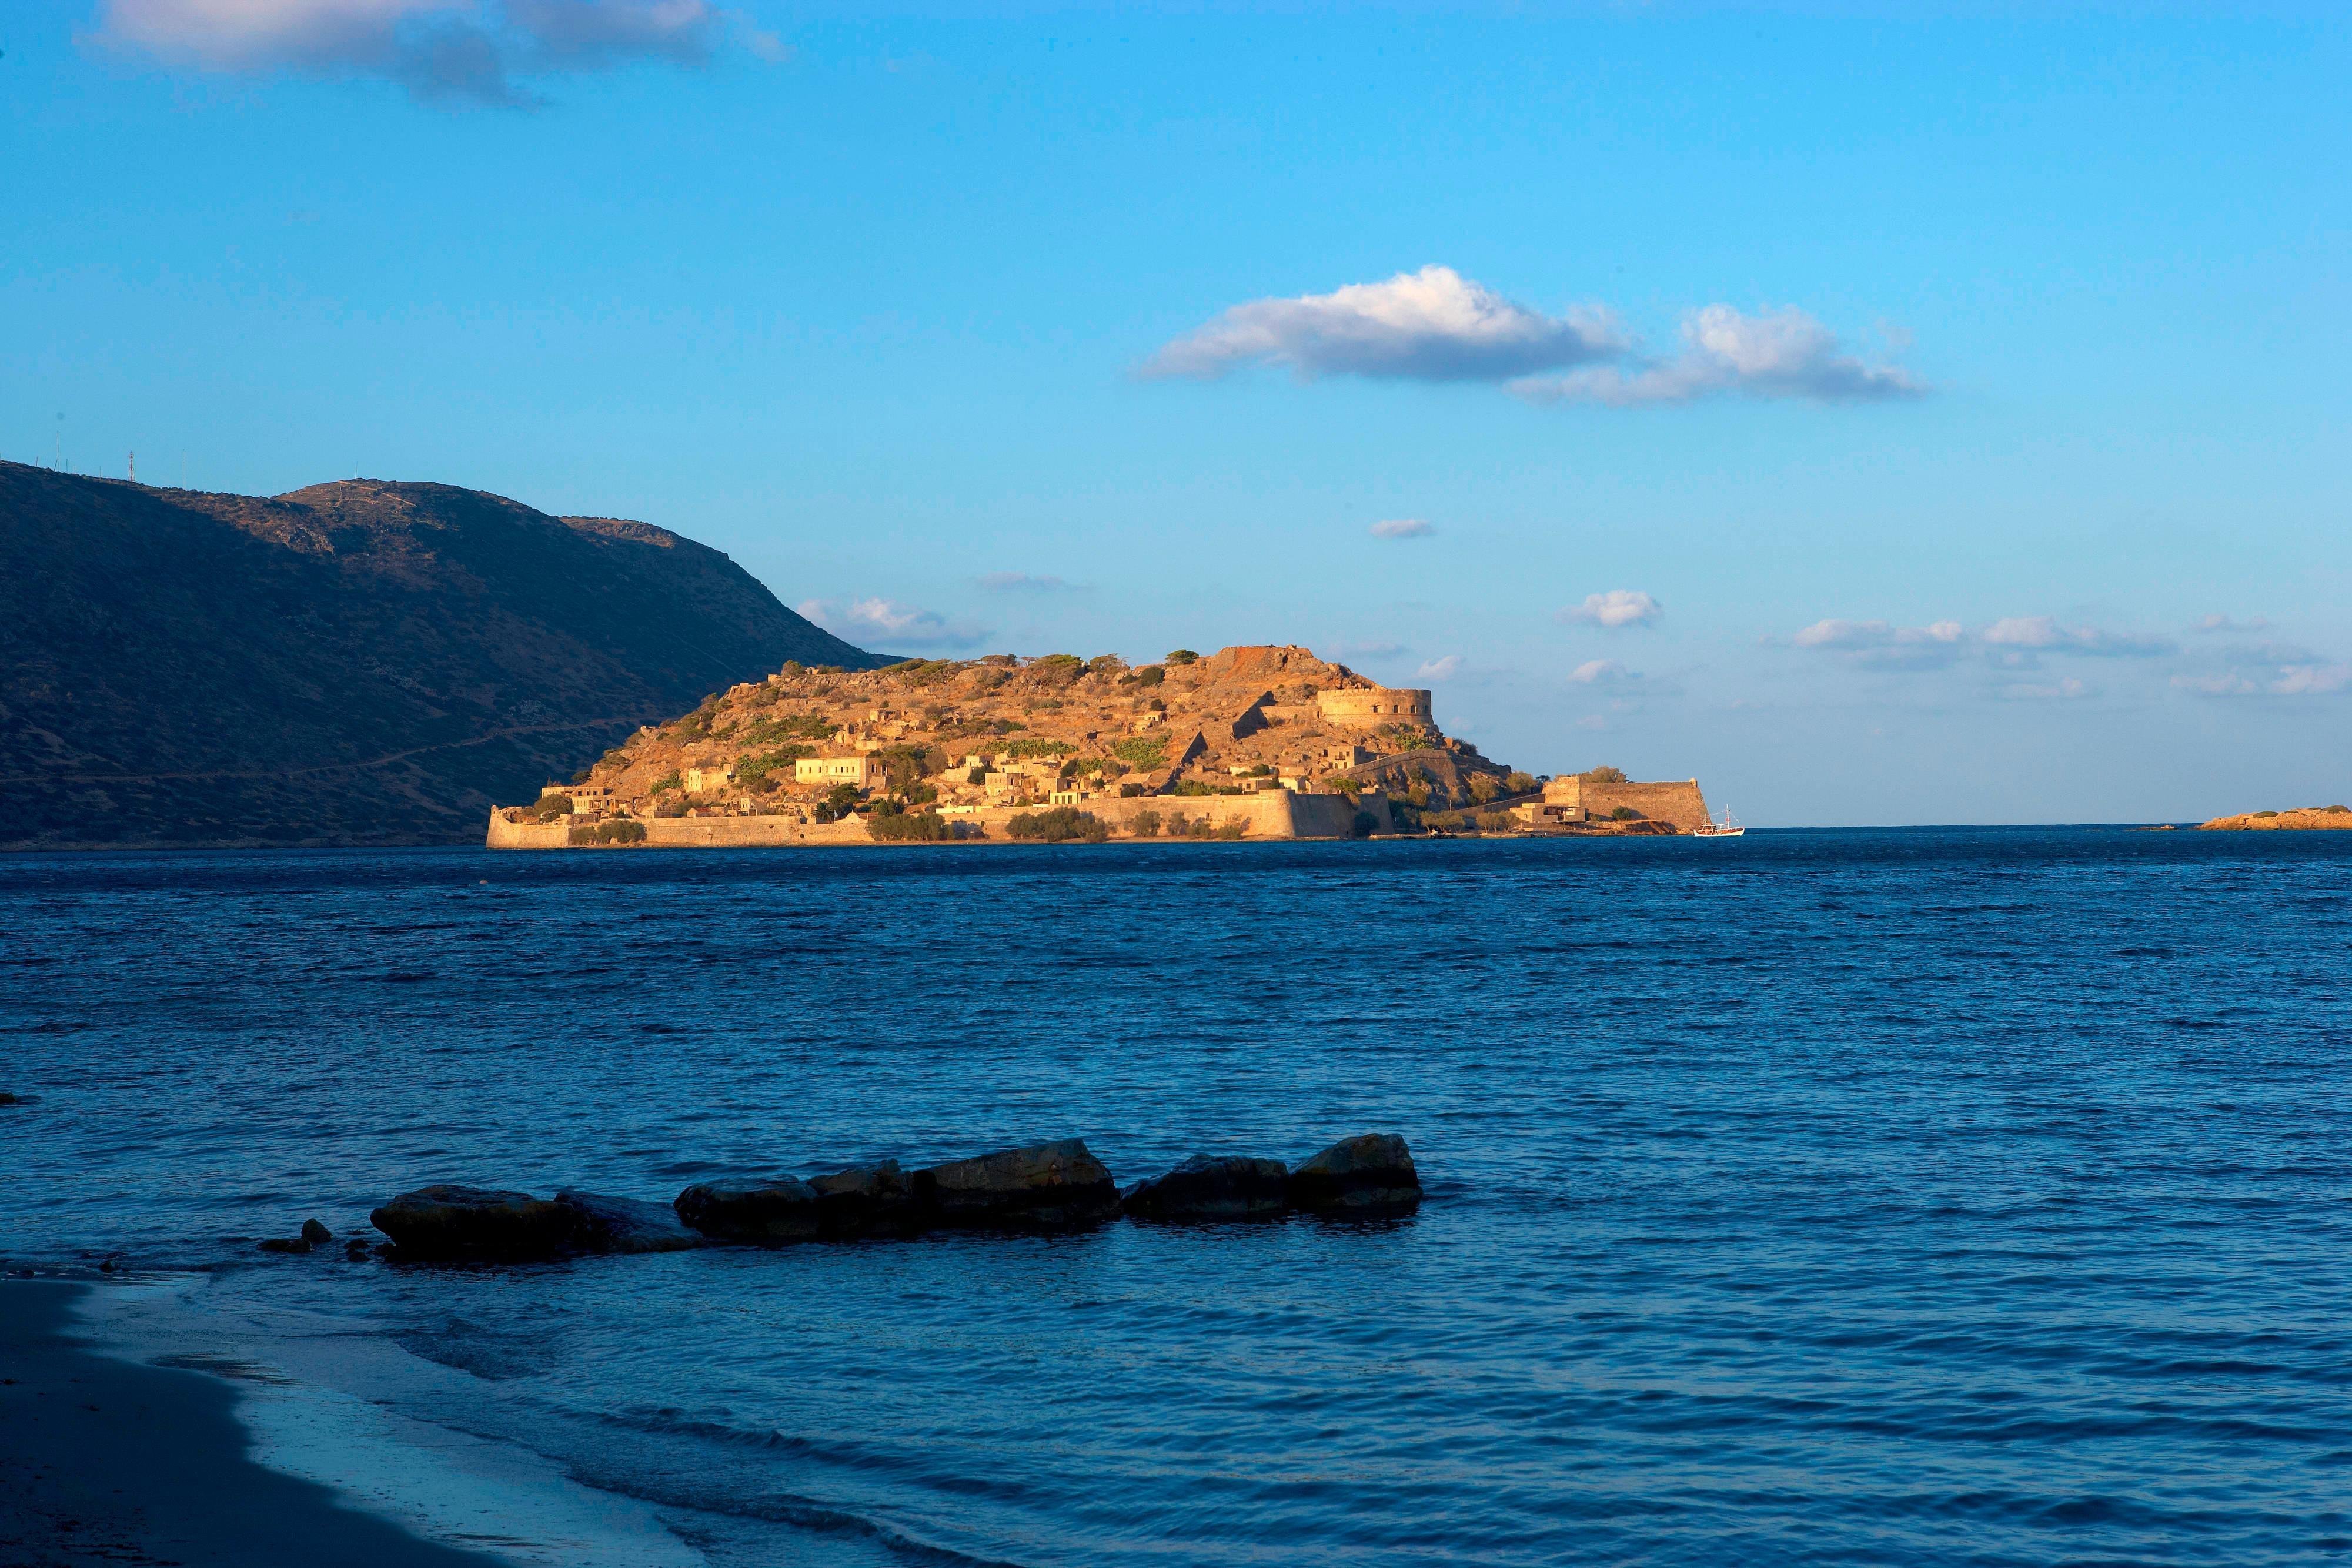 Spinalonga Island opposite the resort